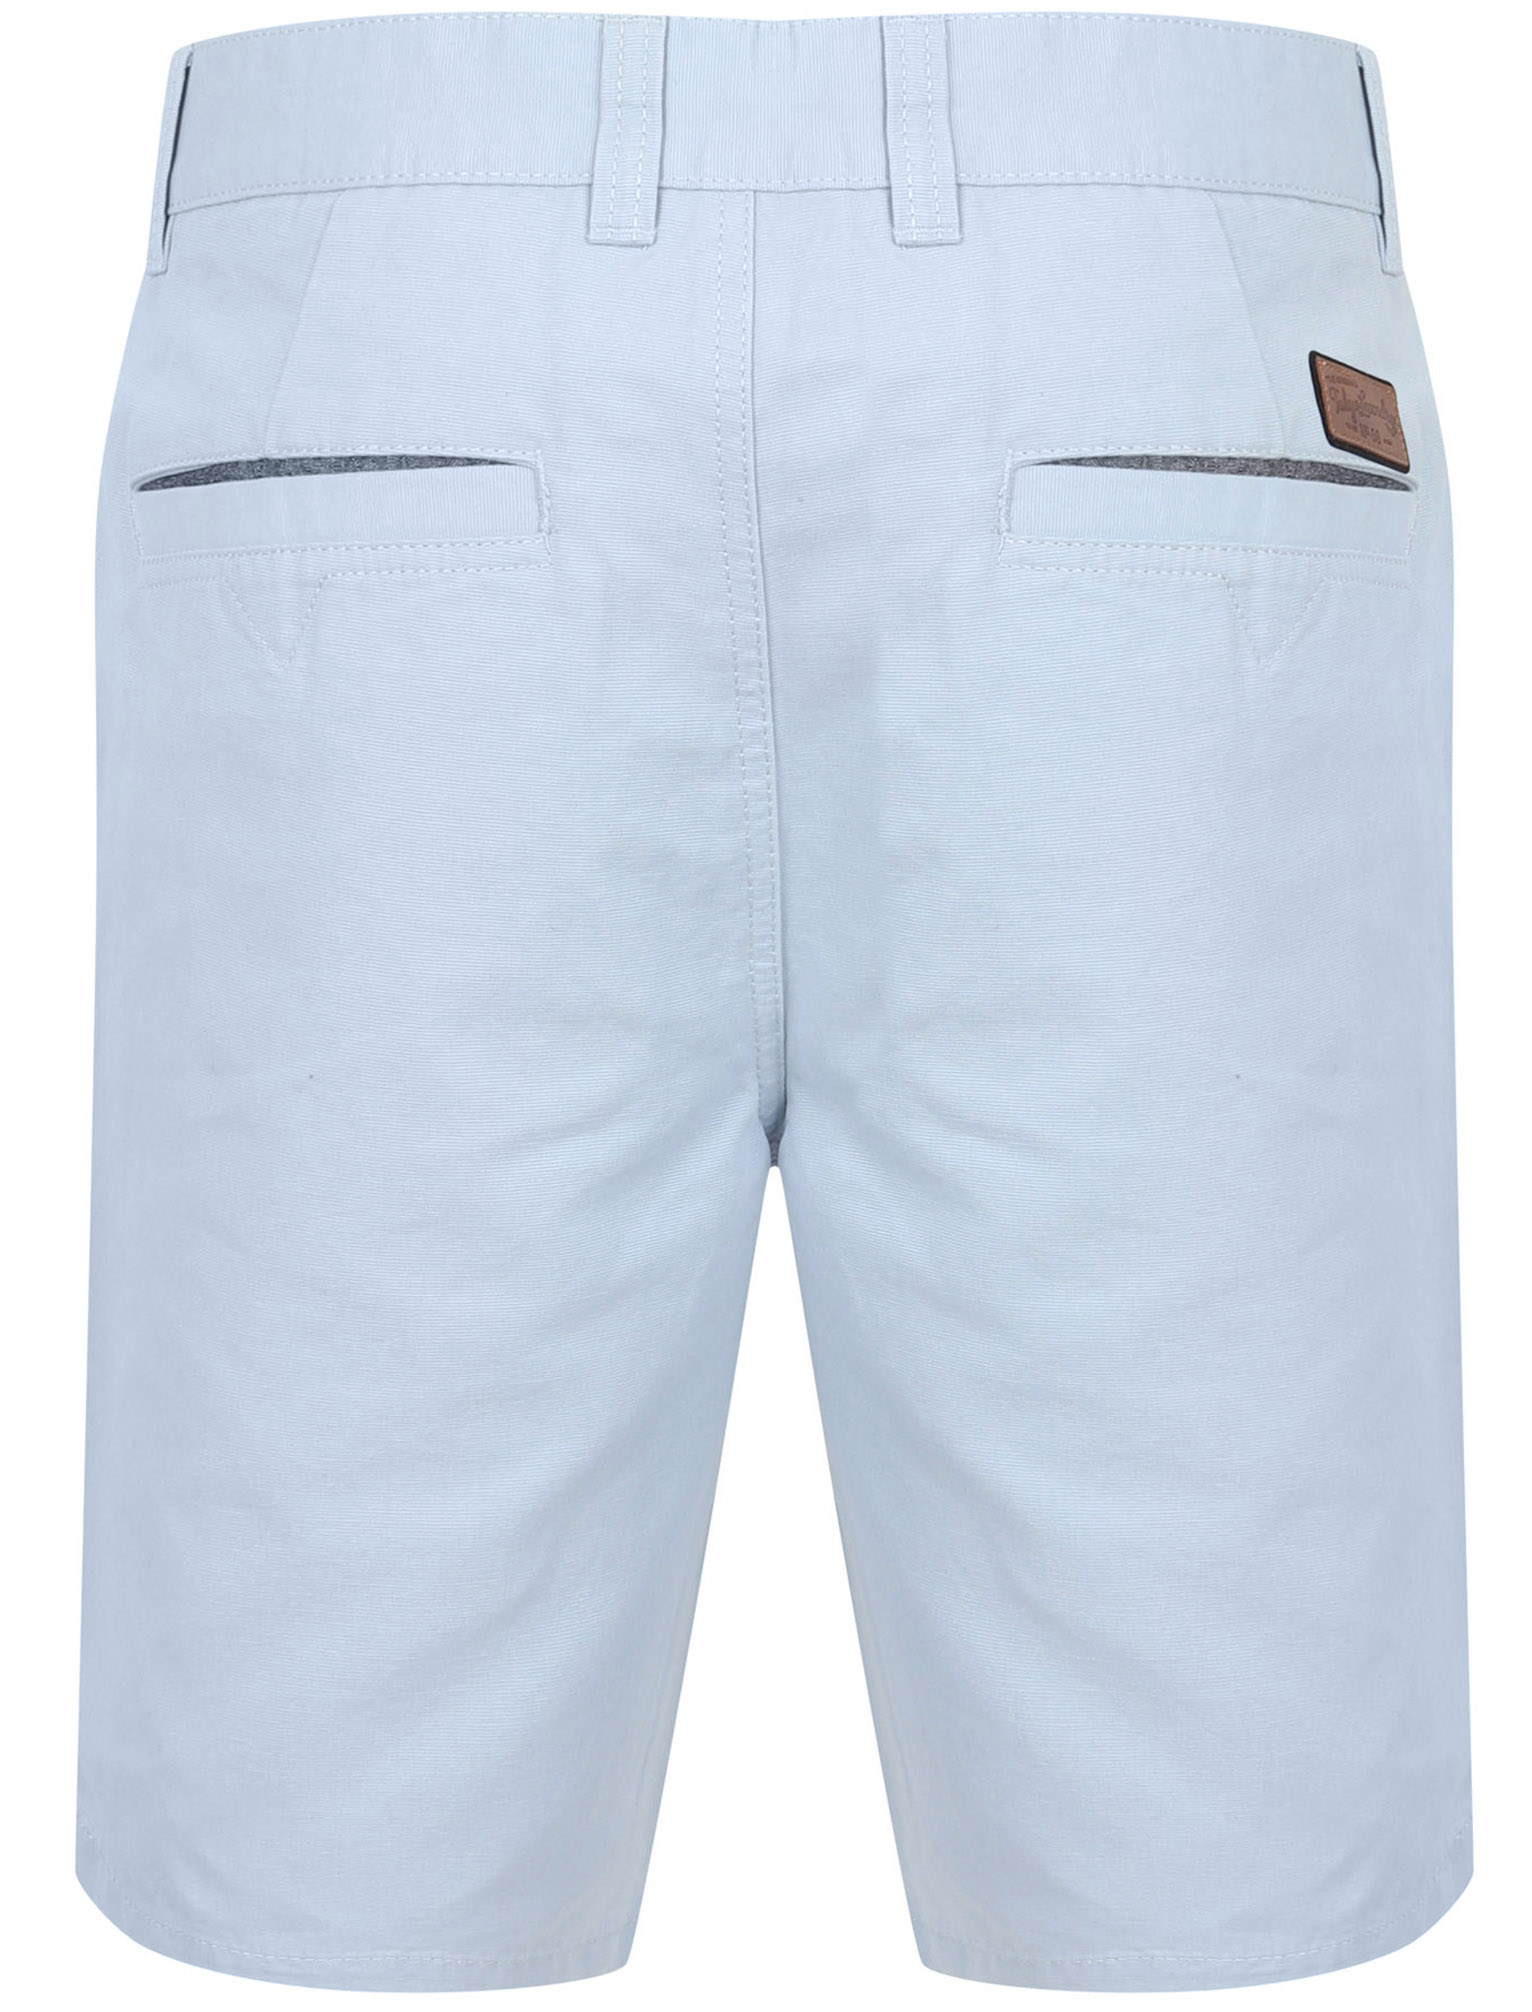 Tokyo-Laundry-Men-039-s-Delgada-Chino-Shorts-Smart-Summer-Casual-Jean-Size-S-XXL thumbnail 9